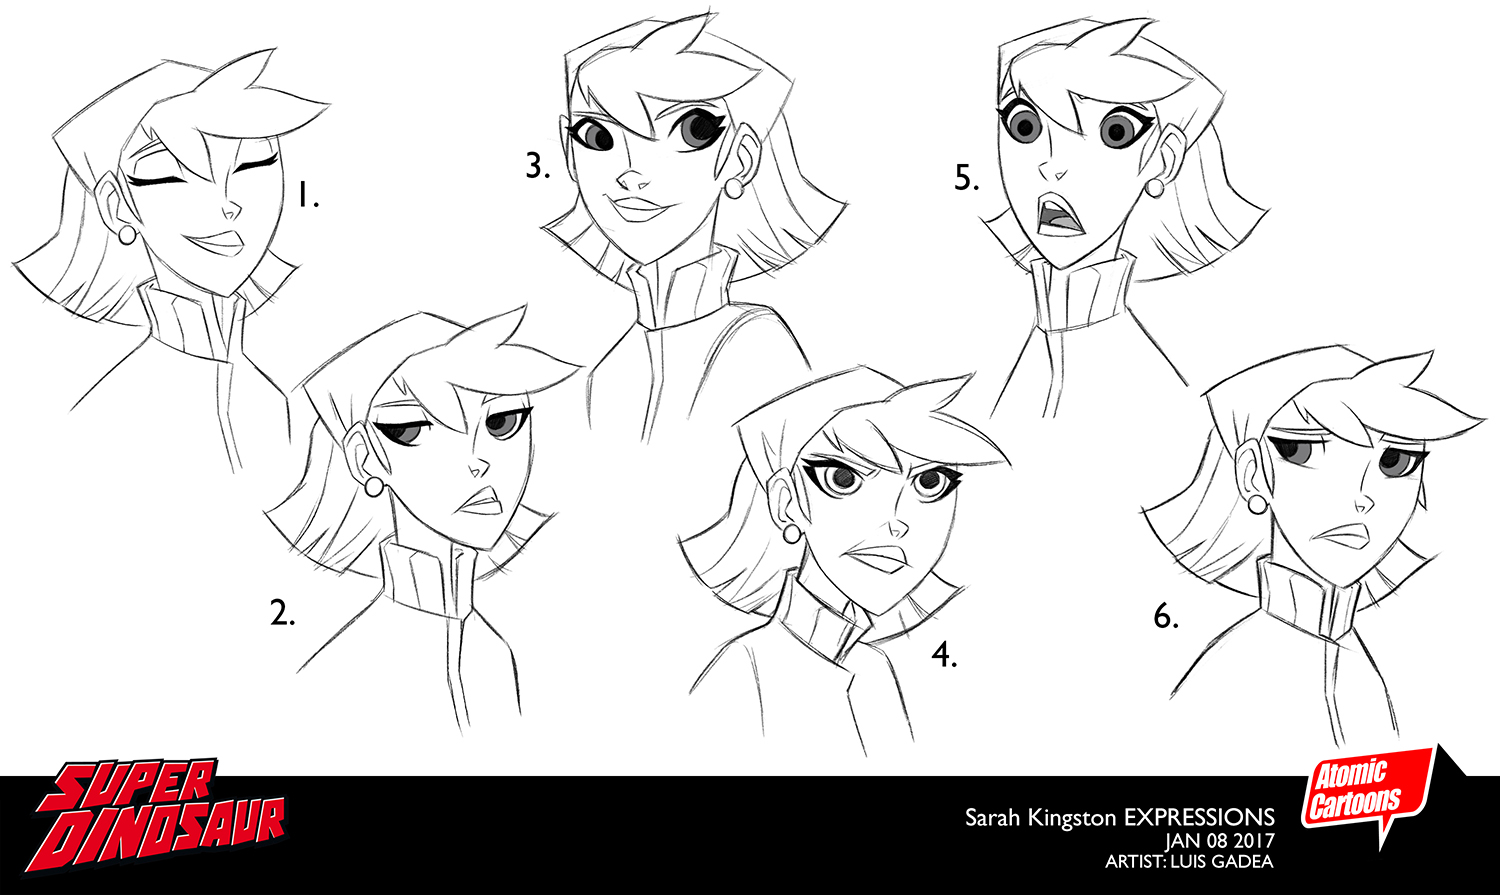 SarahKingston_Expressions_001_low_LG.jpg